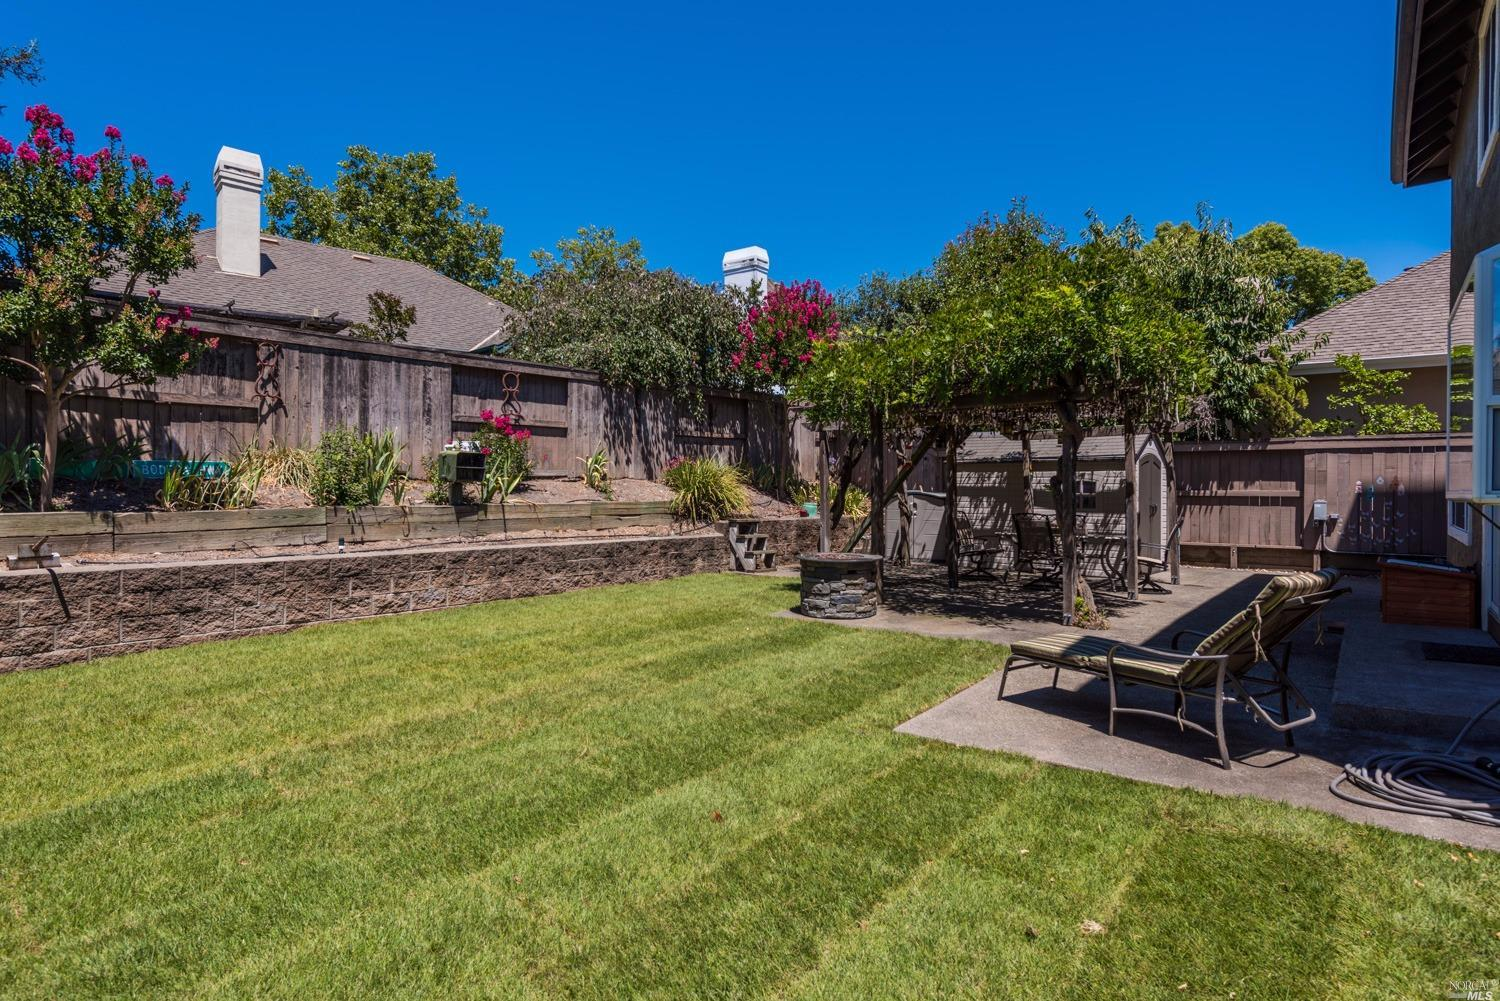 312 Jessie court Windsor, CA 95492 - MLS #: 21715468